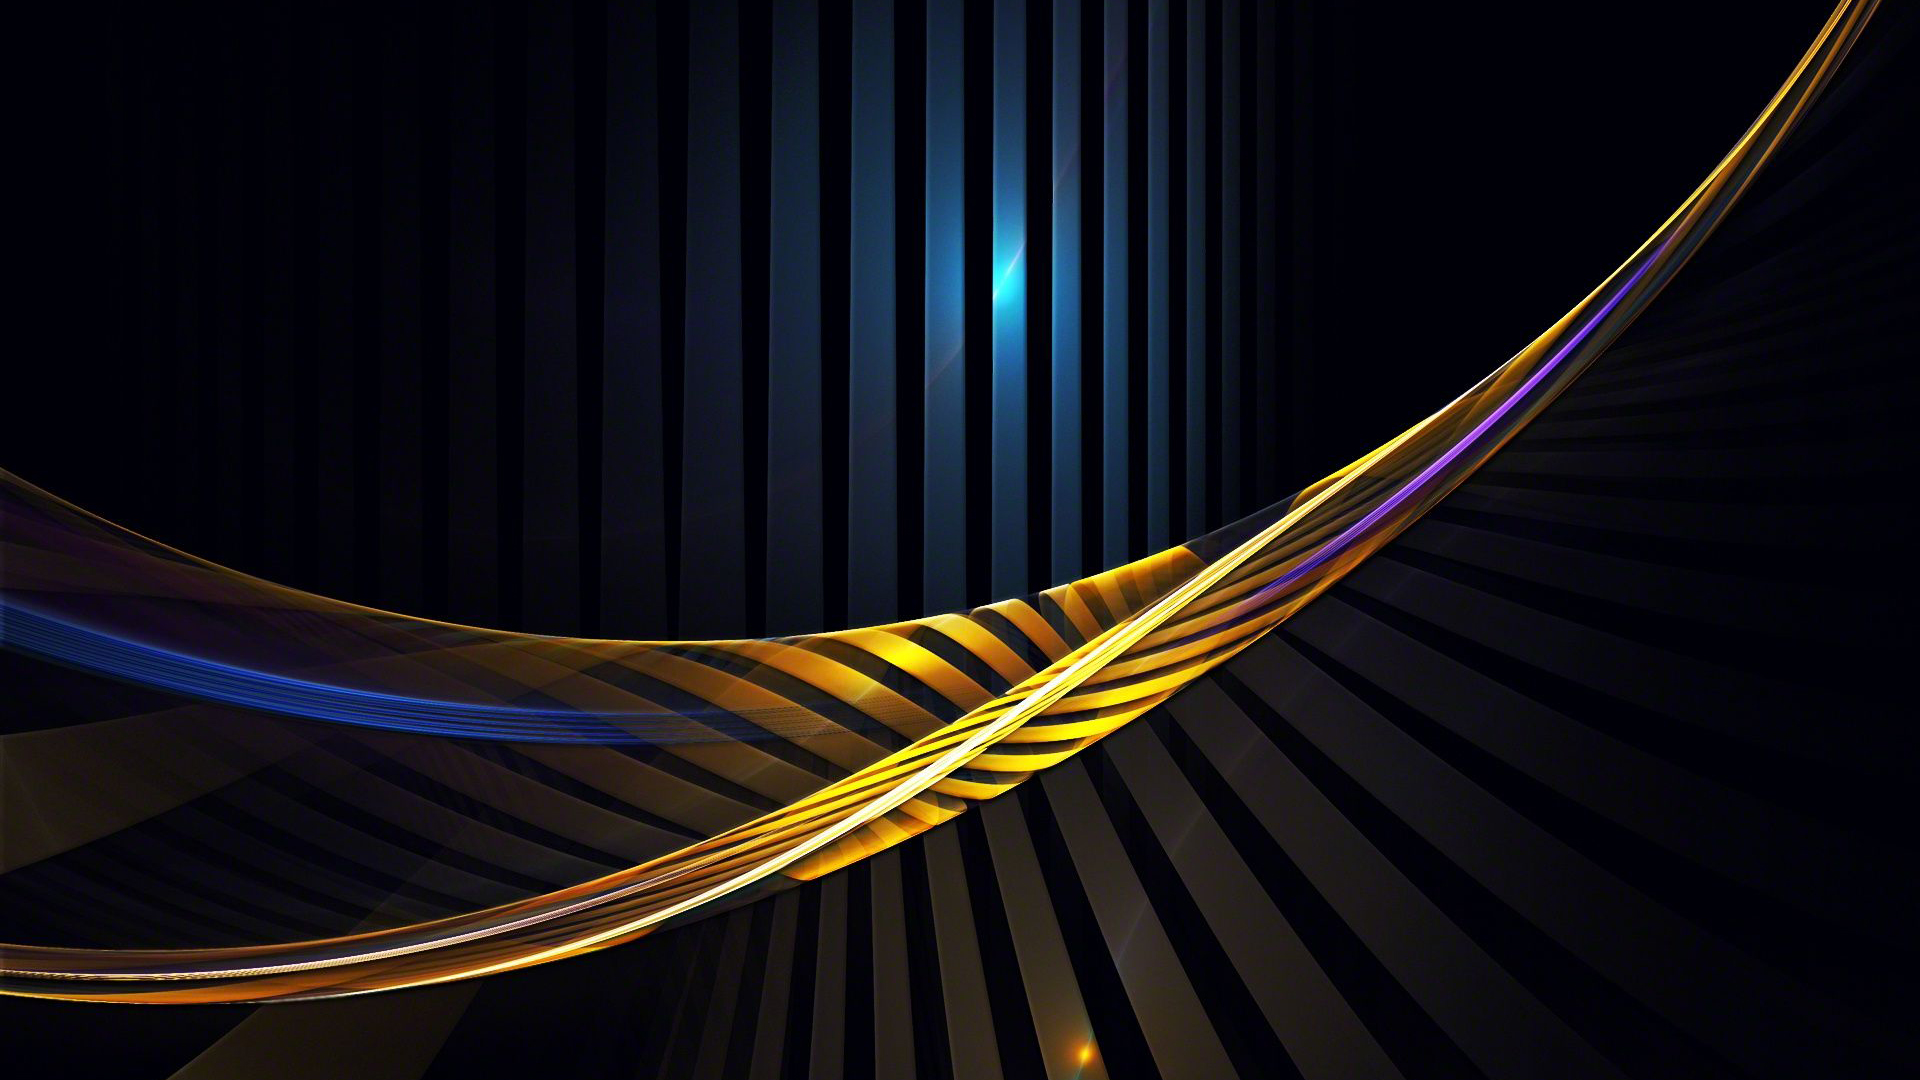 Art In Lines : Abstract art using lines in yellow and dark hd